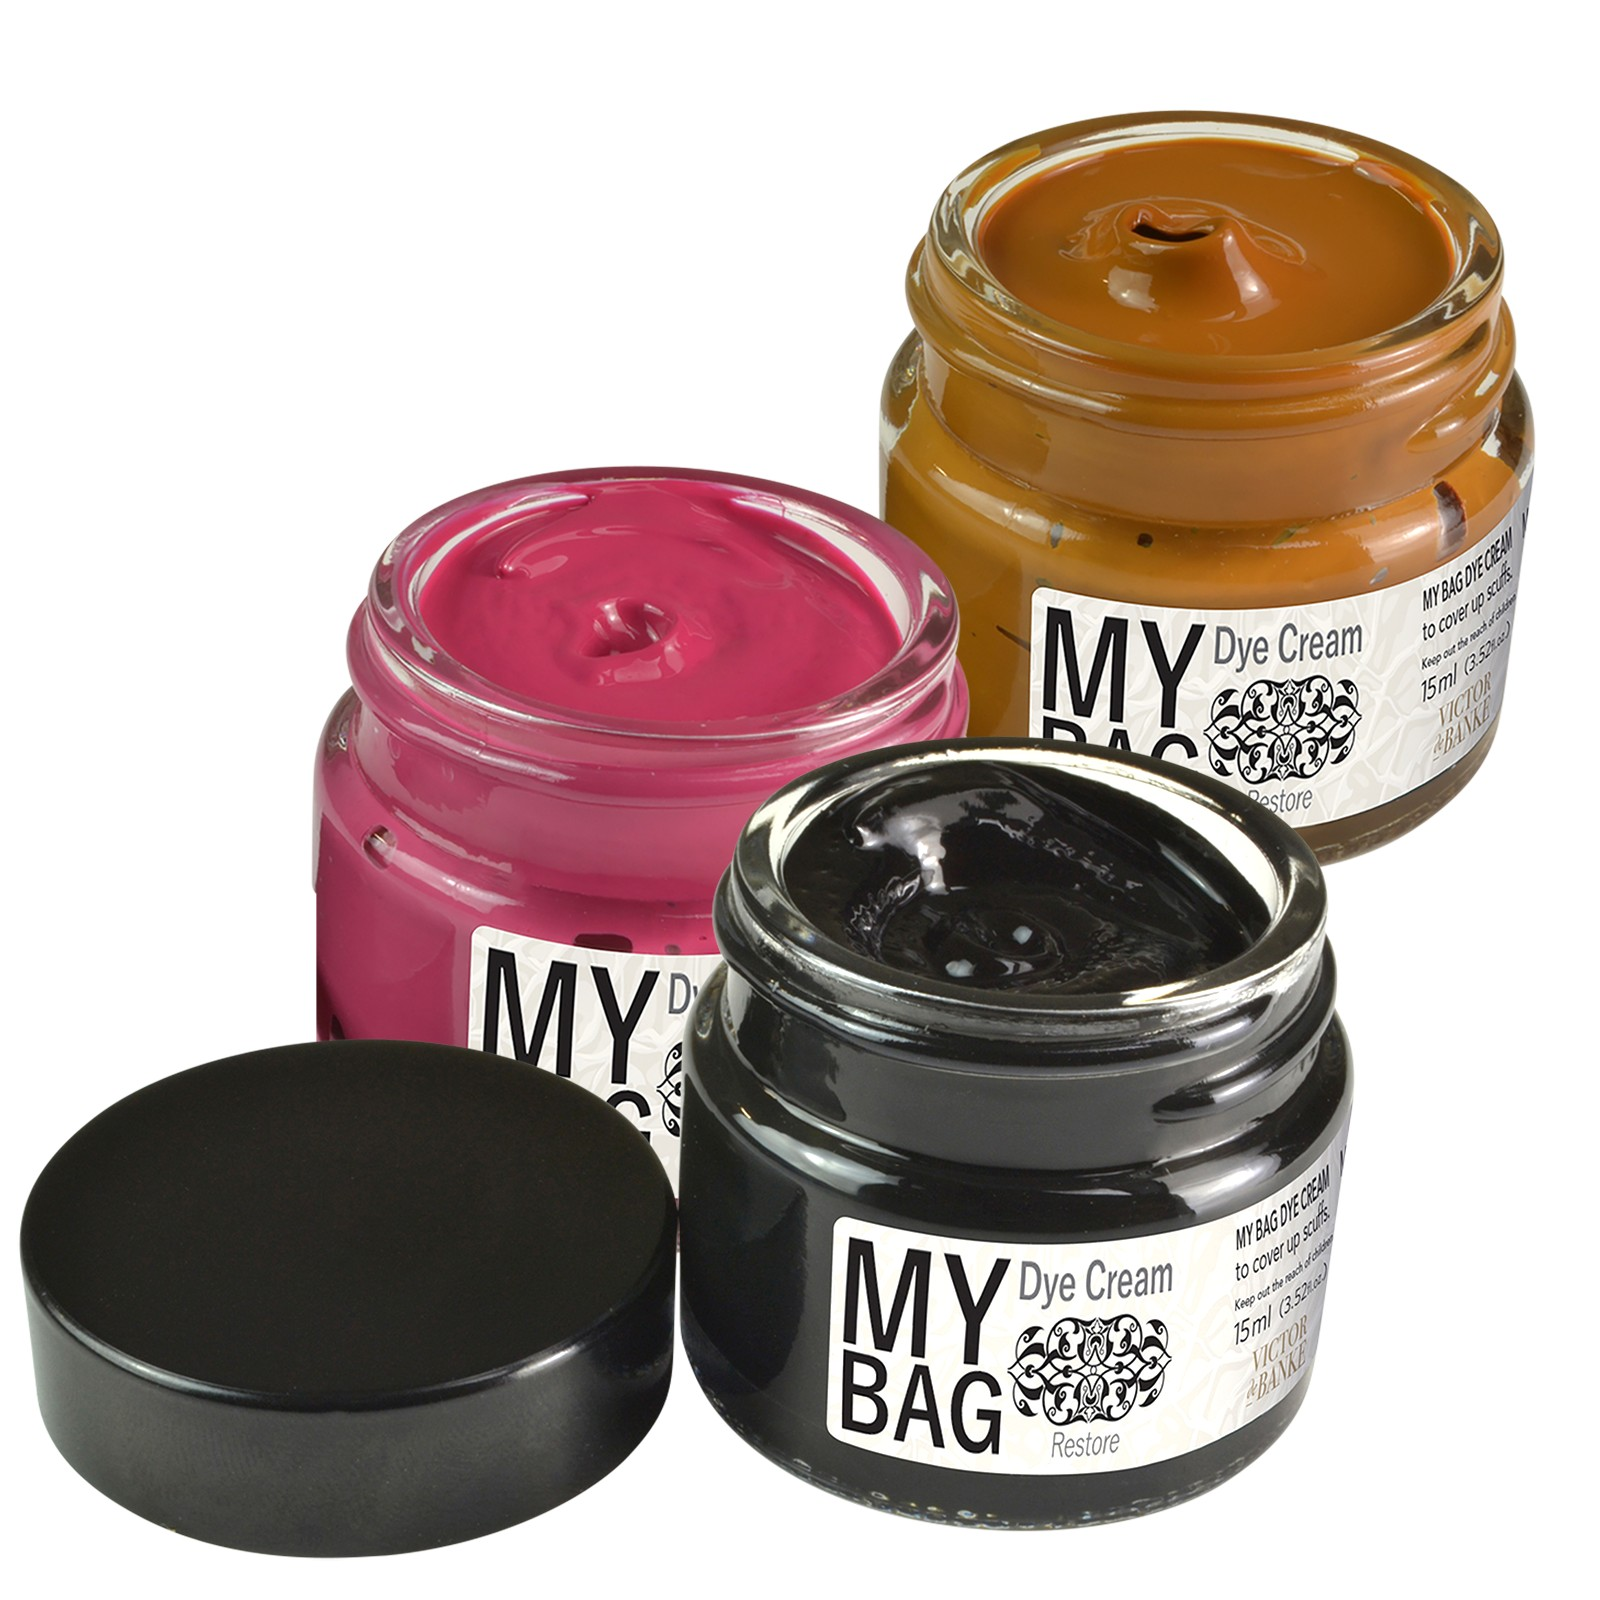 My Bag Renovation Dye Cream